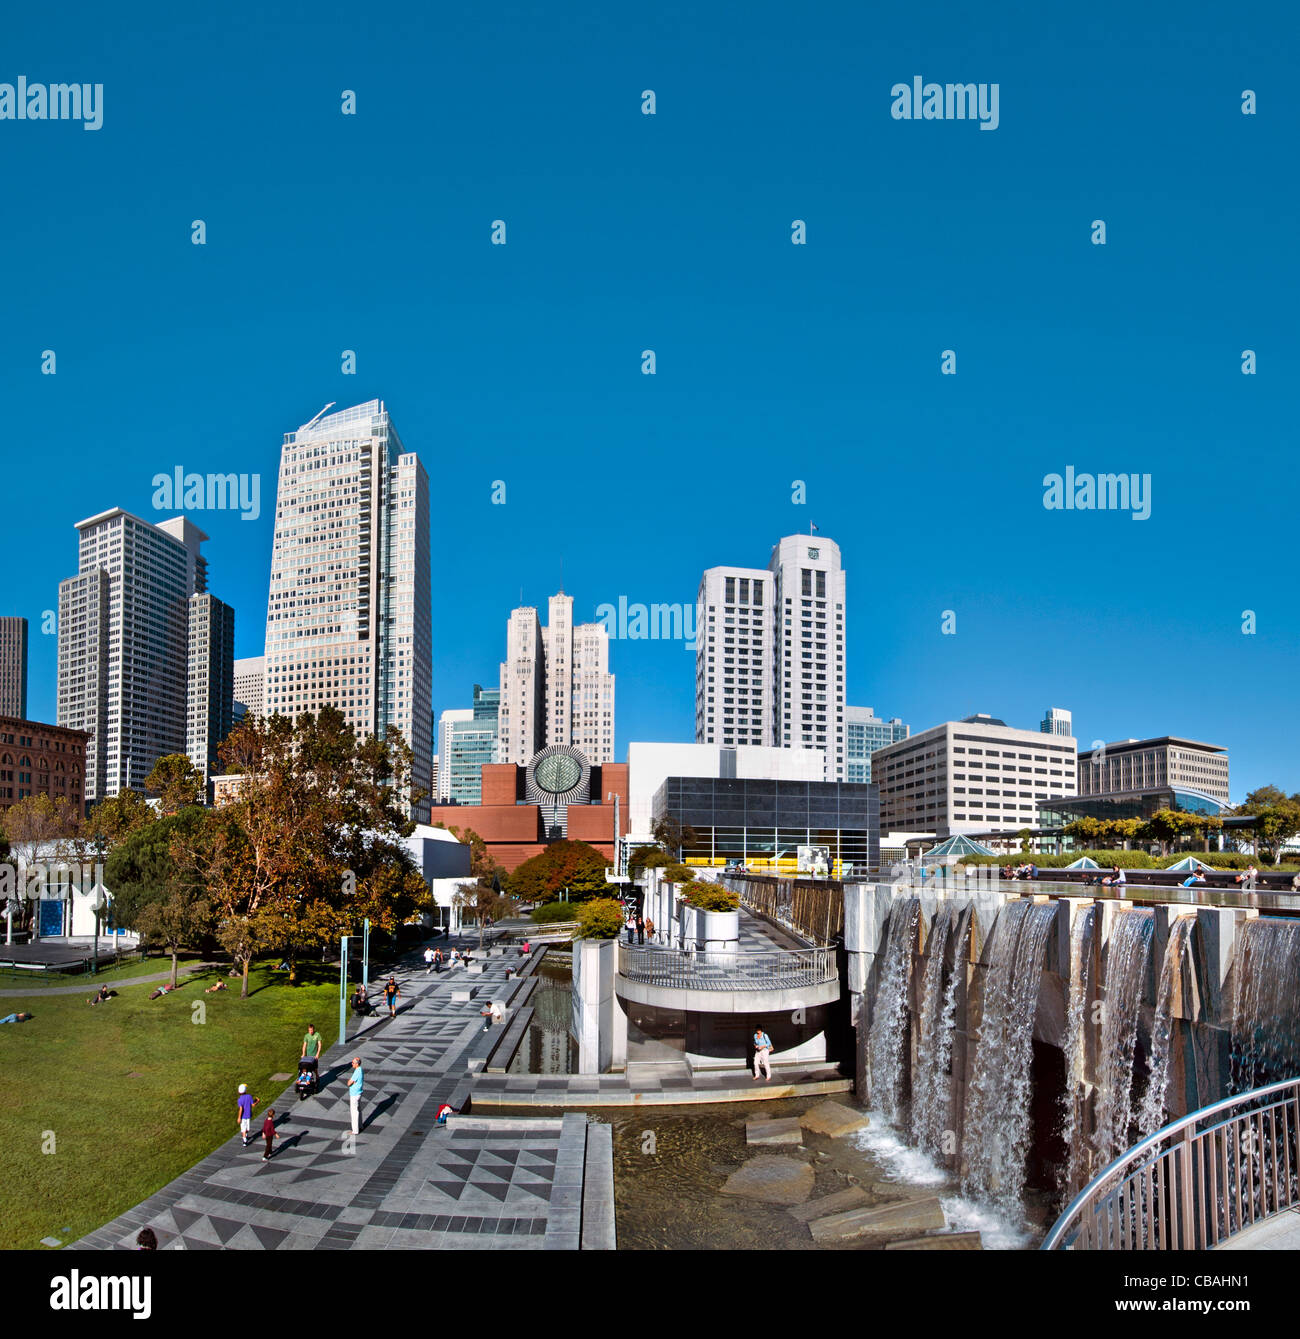 Yerba Buena Gardens cultural heart public parks 3-4 Mission and Folsom Streets downtown San Francisco California - Stock Image